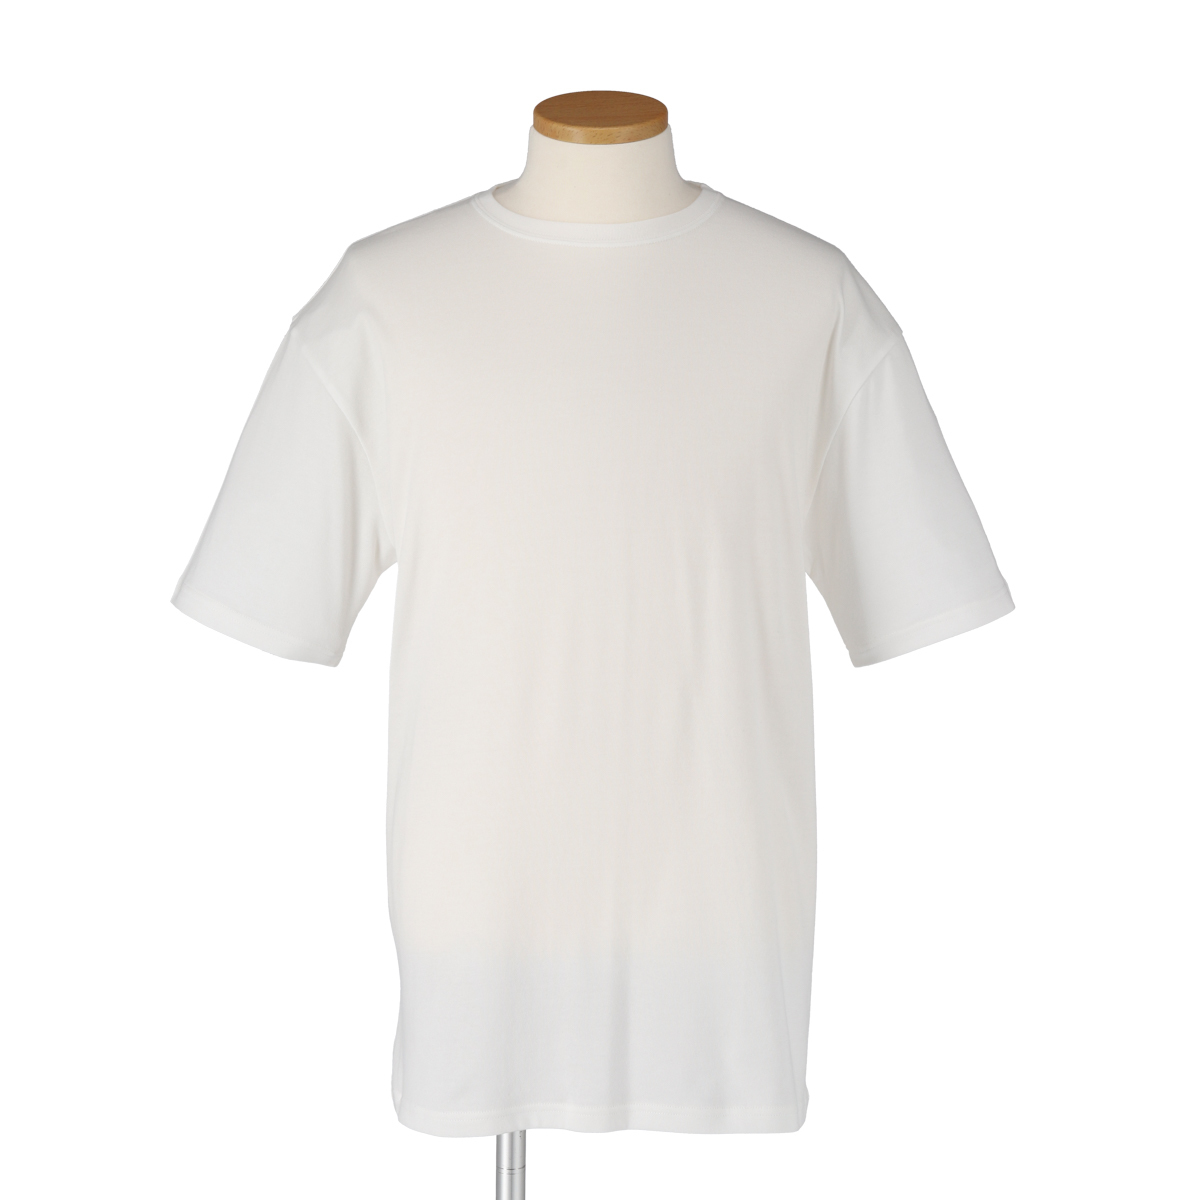 【STEALTH STELL'A】BACK LABEL(WHITE)